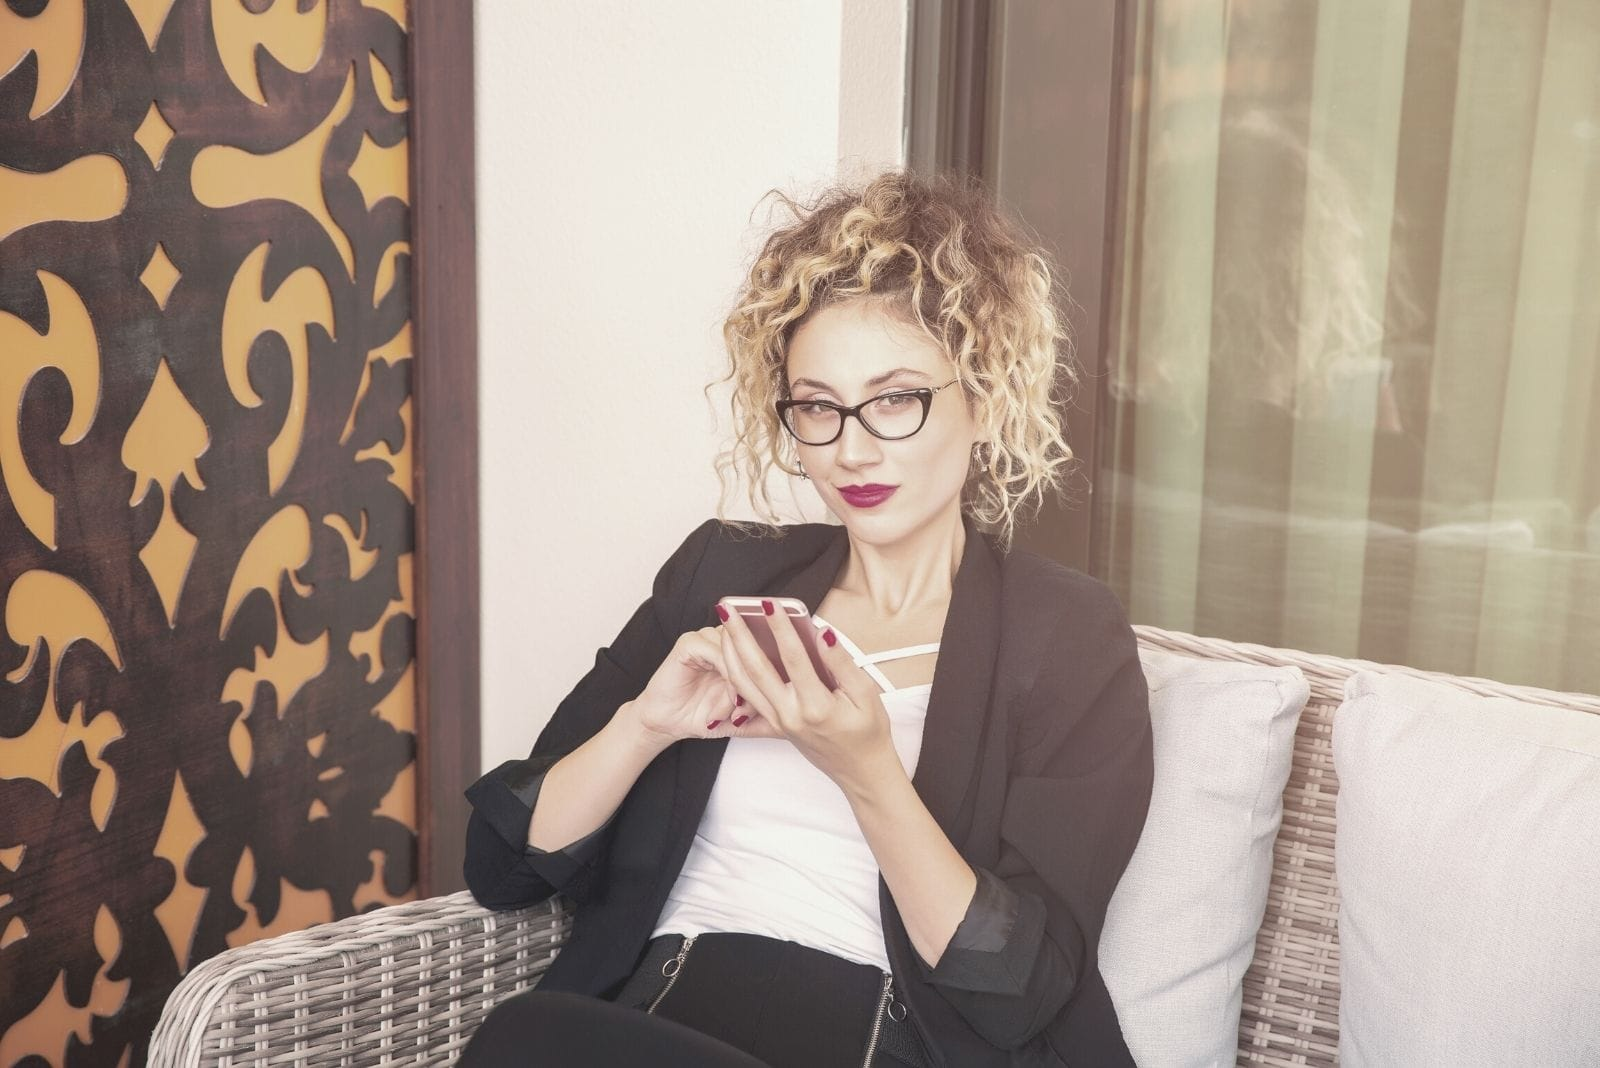 businesswoman social media concept of a woman with a phone and sitting indoors